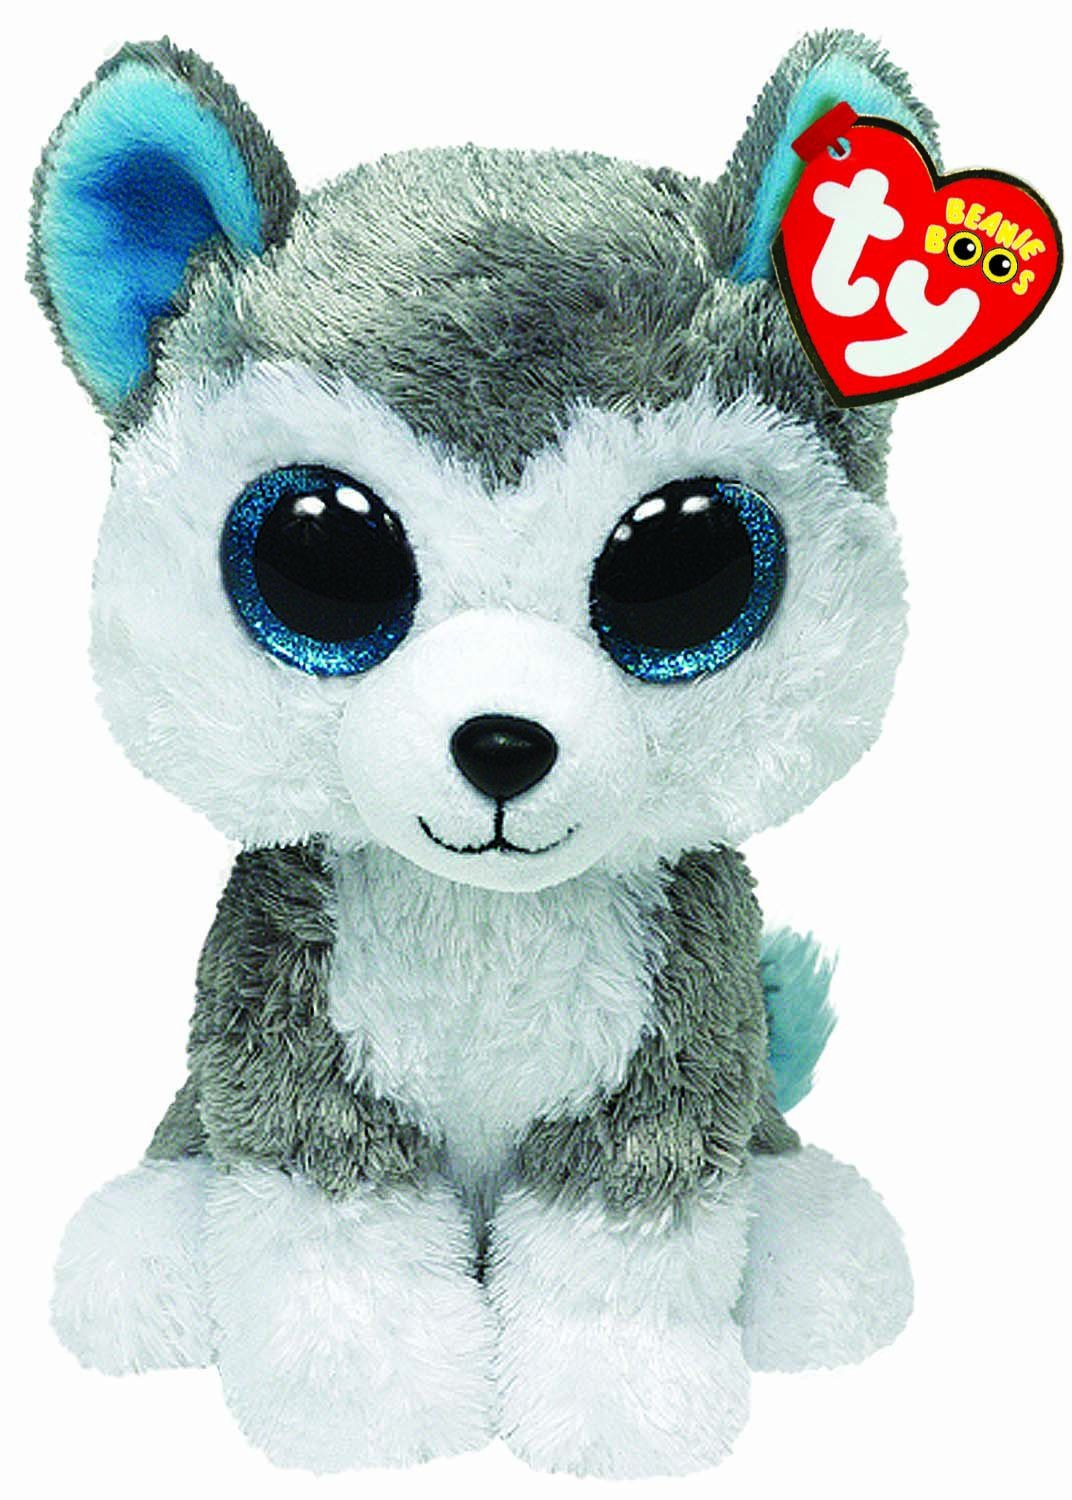 5e12a3569cb TY BEANIE BOOS SLUSH THE HUSKY - Christmas Wishes Gifts